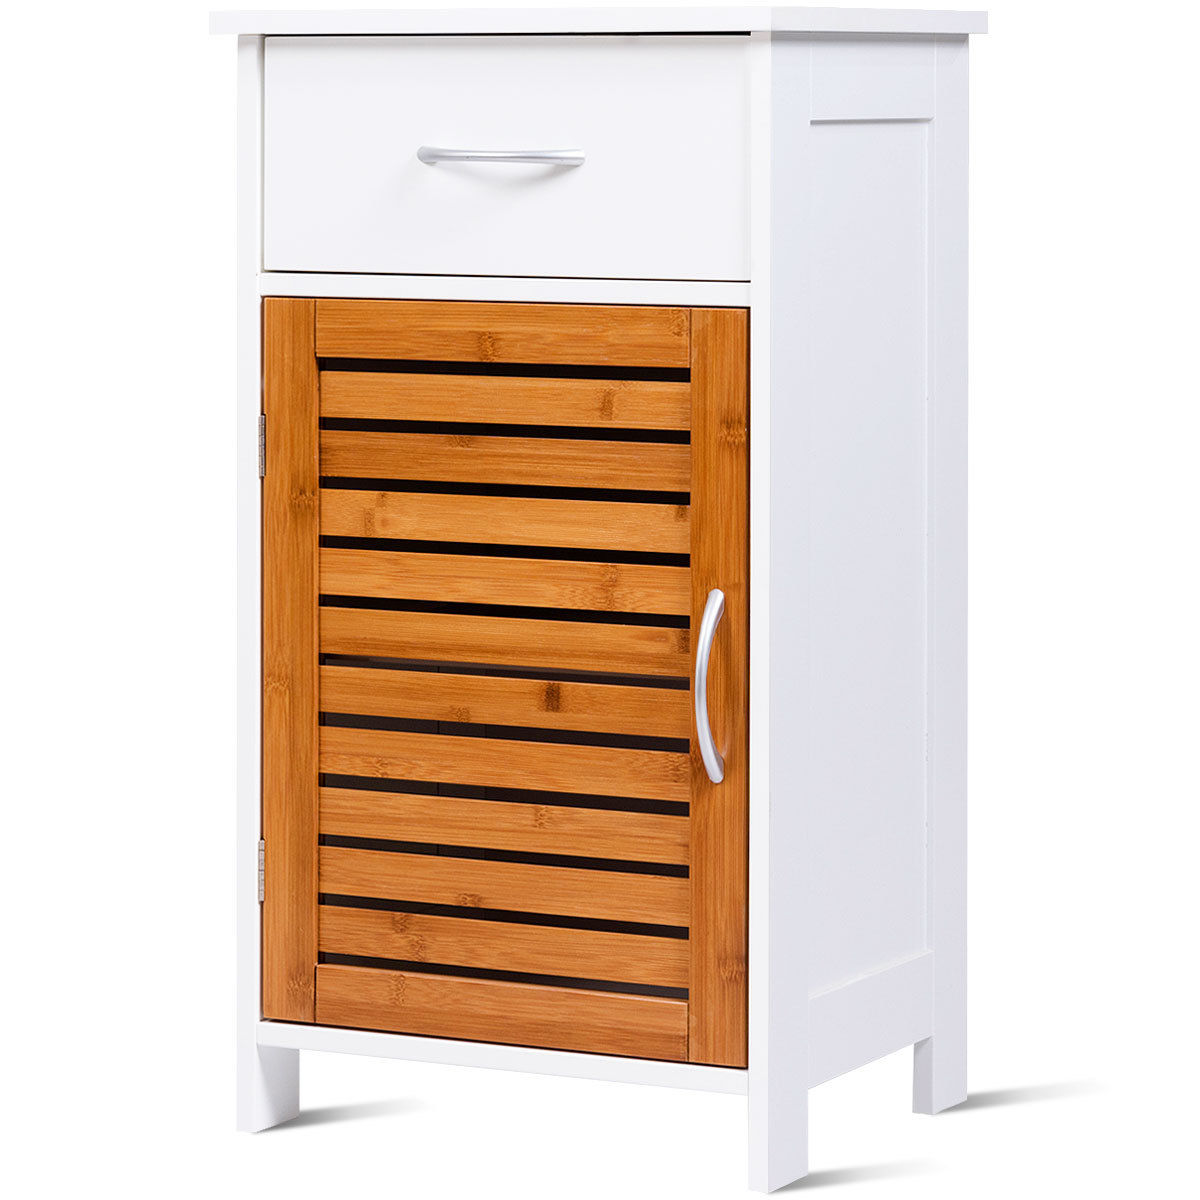 Gymax Floor Cabinet Standing Storage Wall Shutter Door Bathroom Organizer